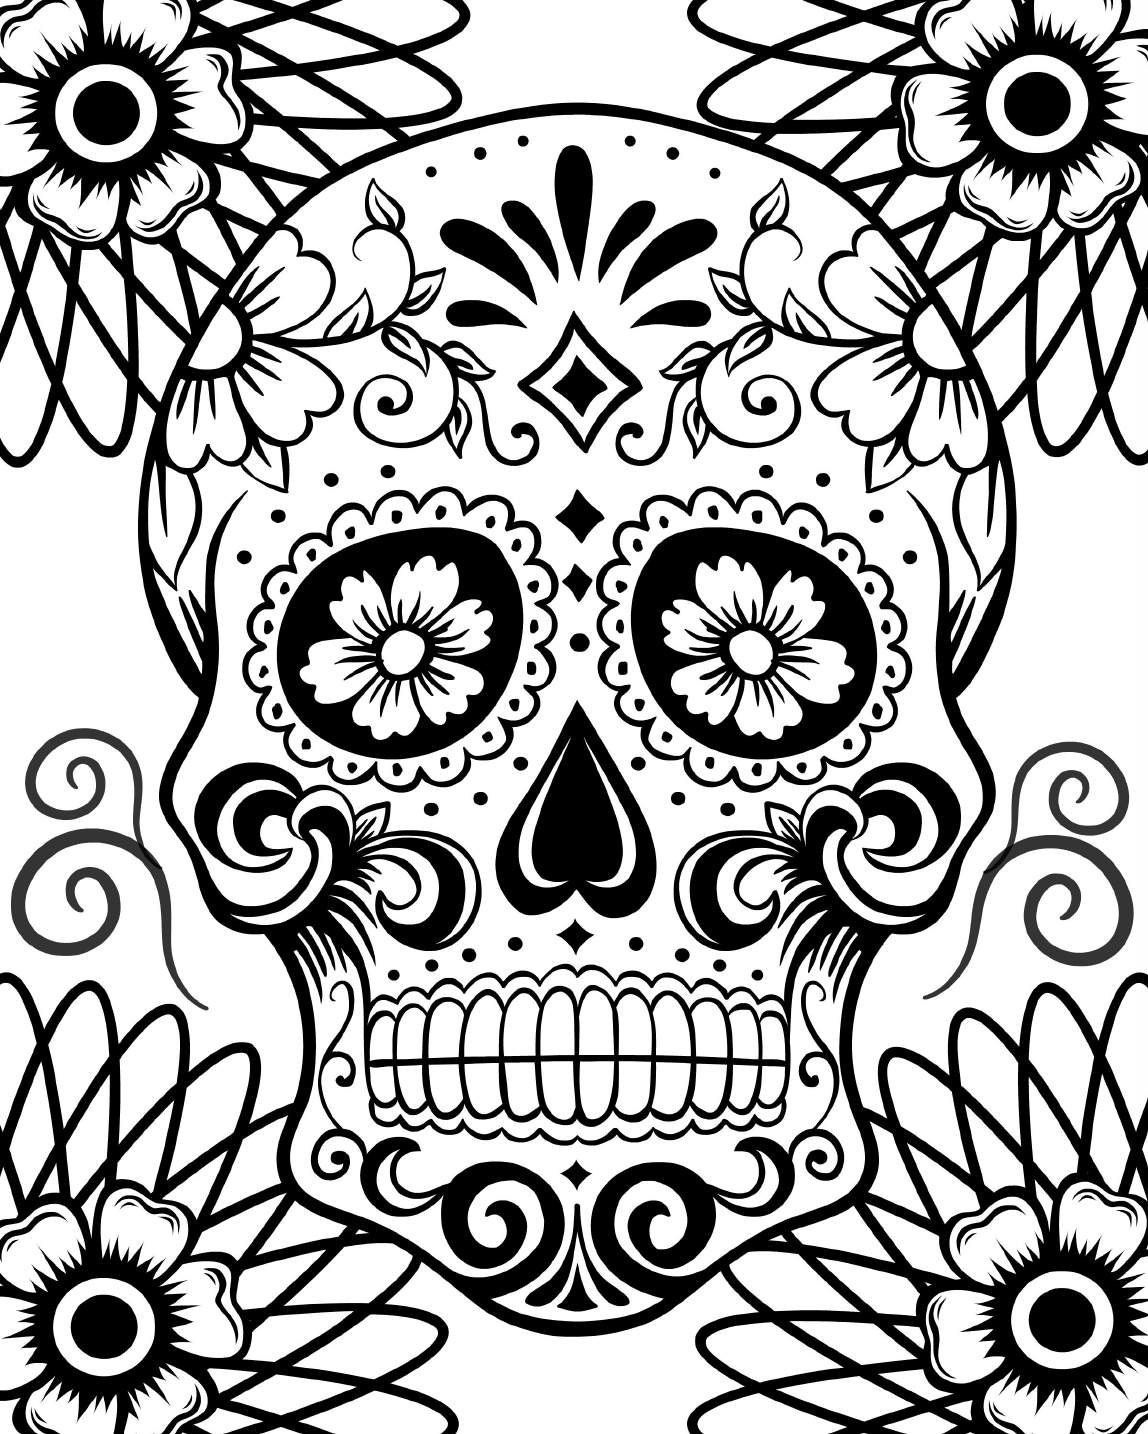 day of dead coloring pages free printable day of the dead coloring pages scribblefun of dead coloring pages day